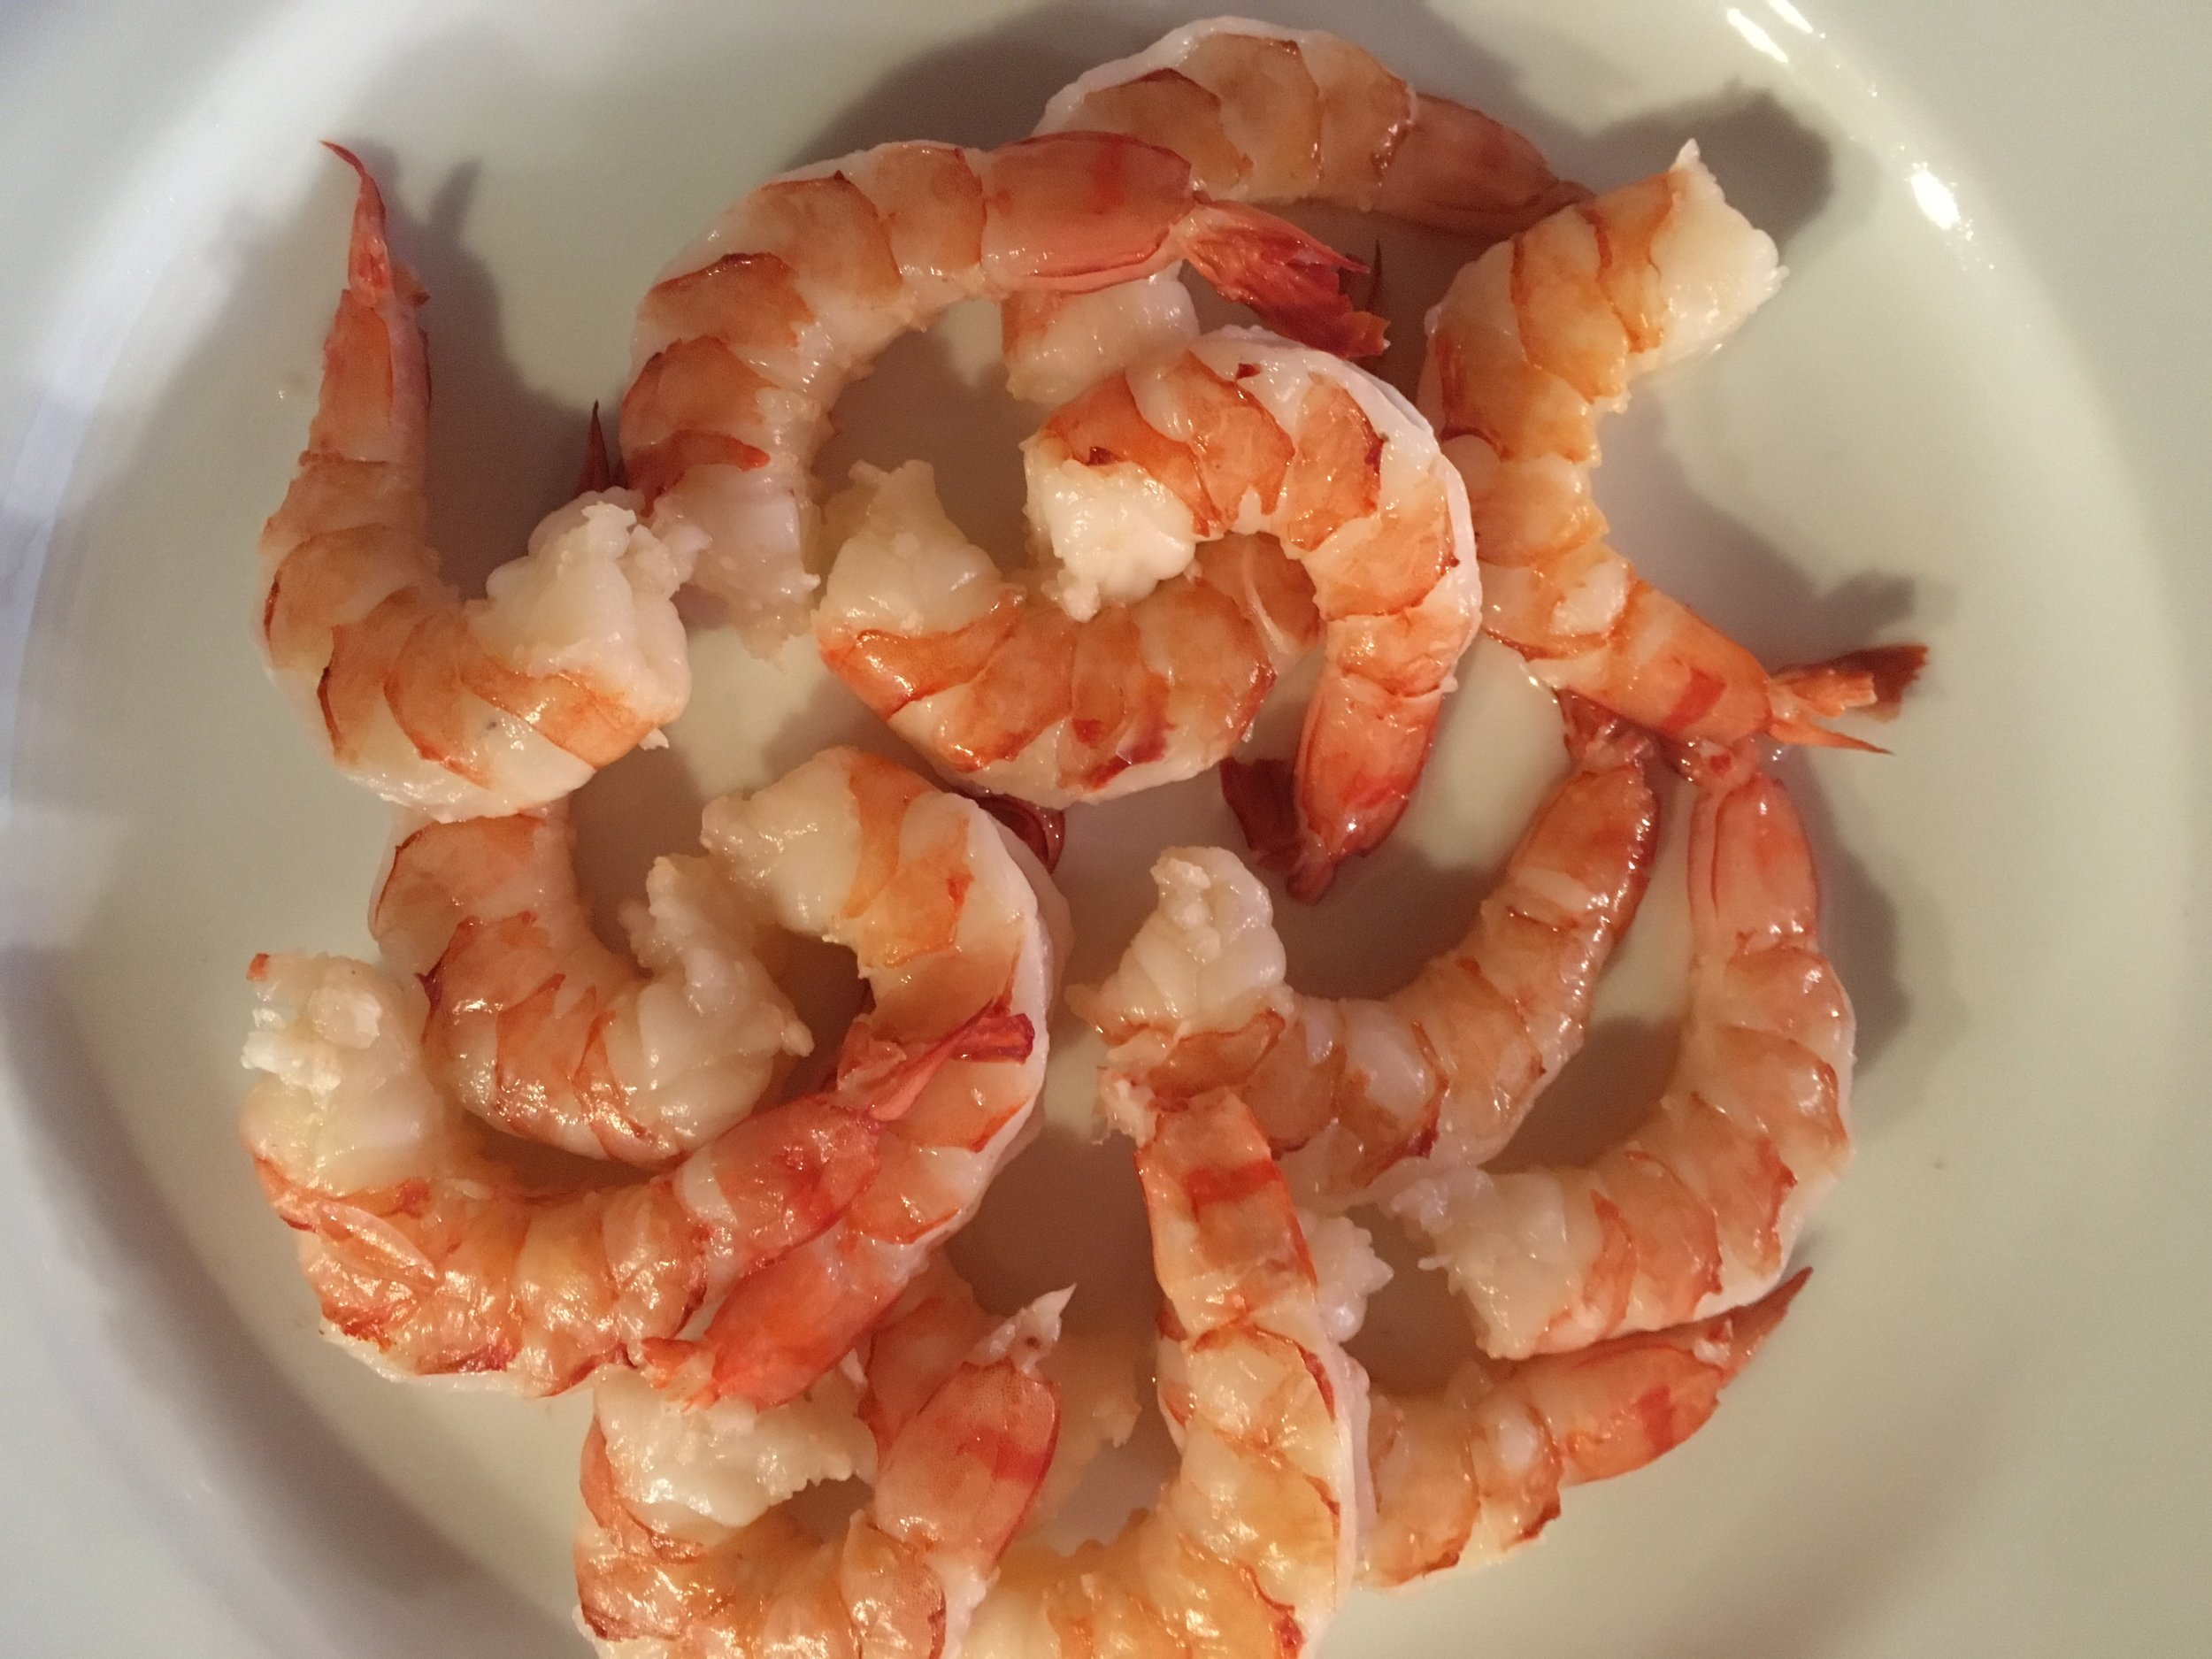 We added prawns for extra protein